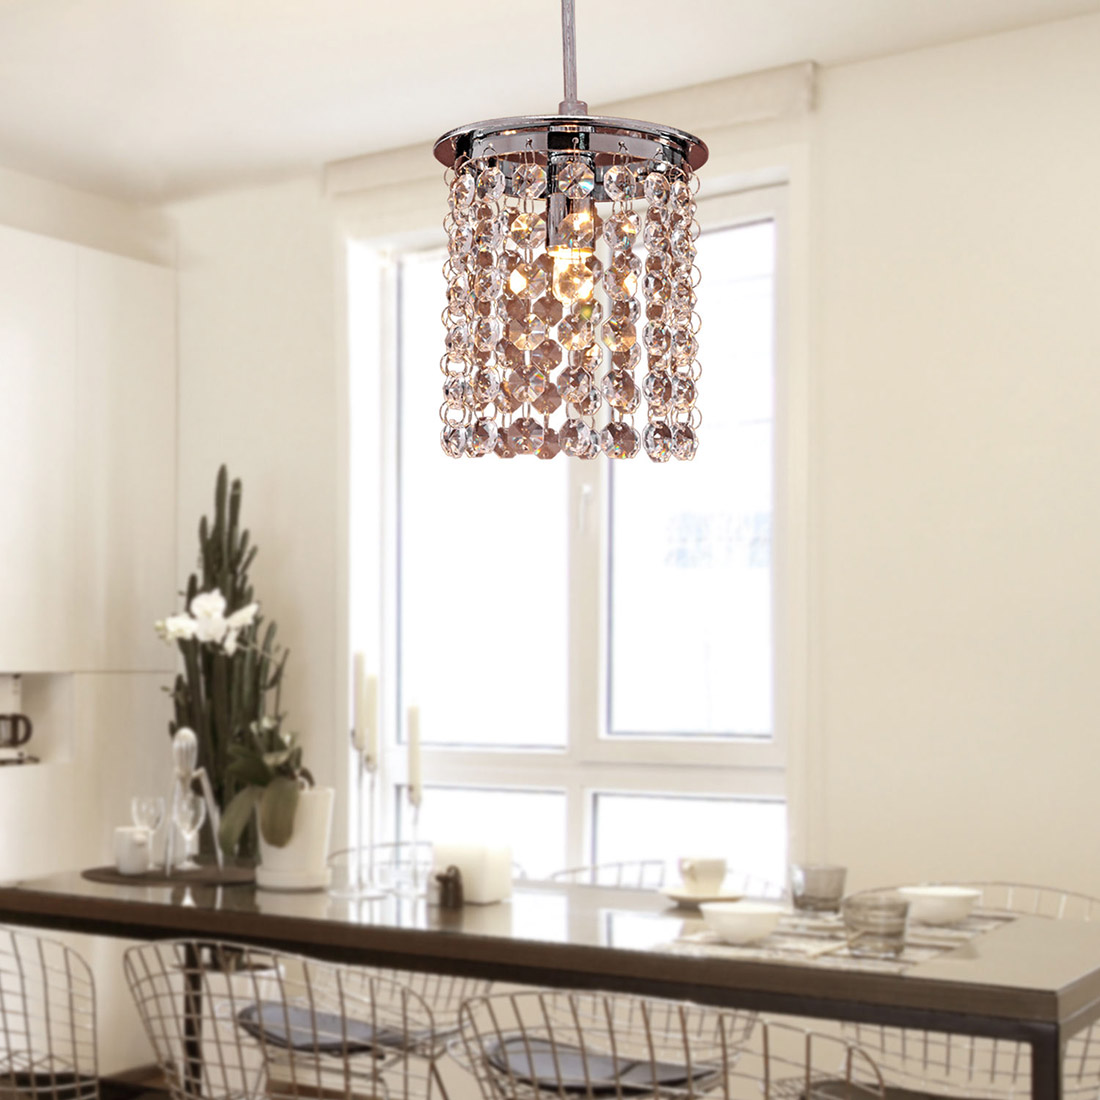 Modern Ceiling Light Dinner Room Pendant Lamp Kitchen: Crystal Light Modern Chandelier Pendant Kitchen Dining